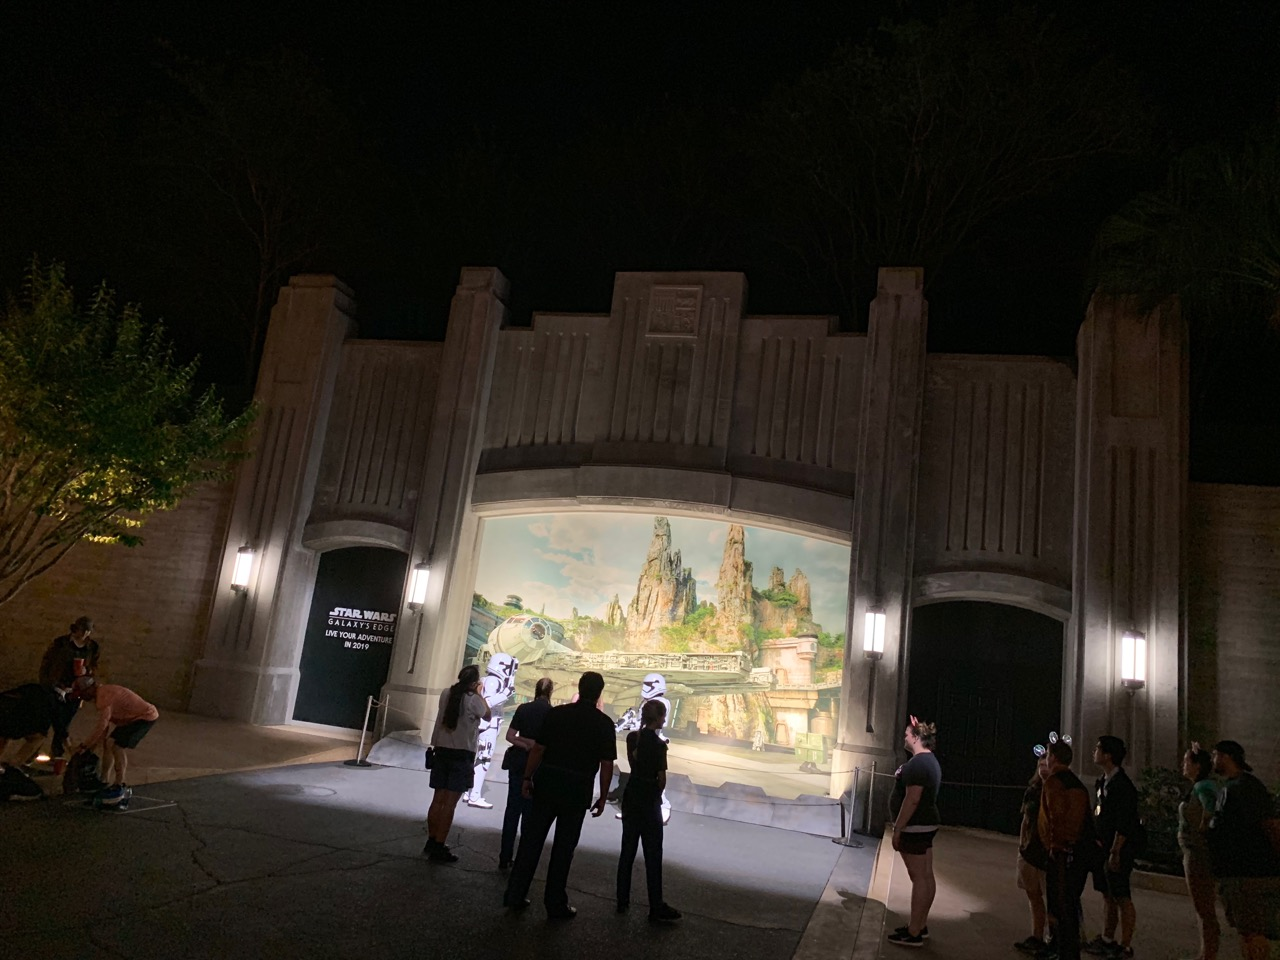 disney world hollywood studios after hours review 44 stormtroopers.jpeg